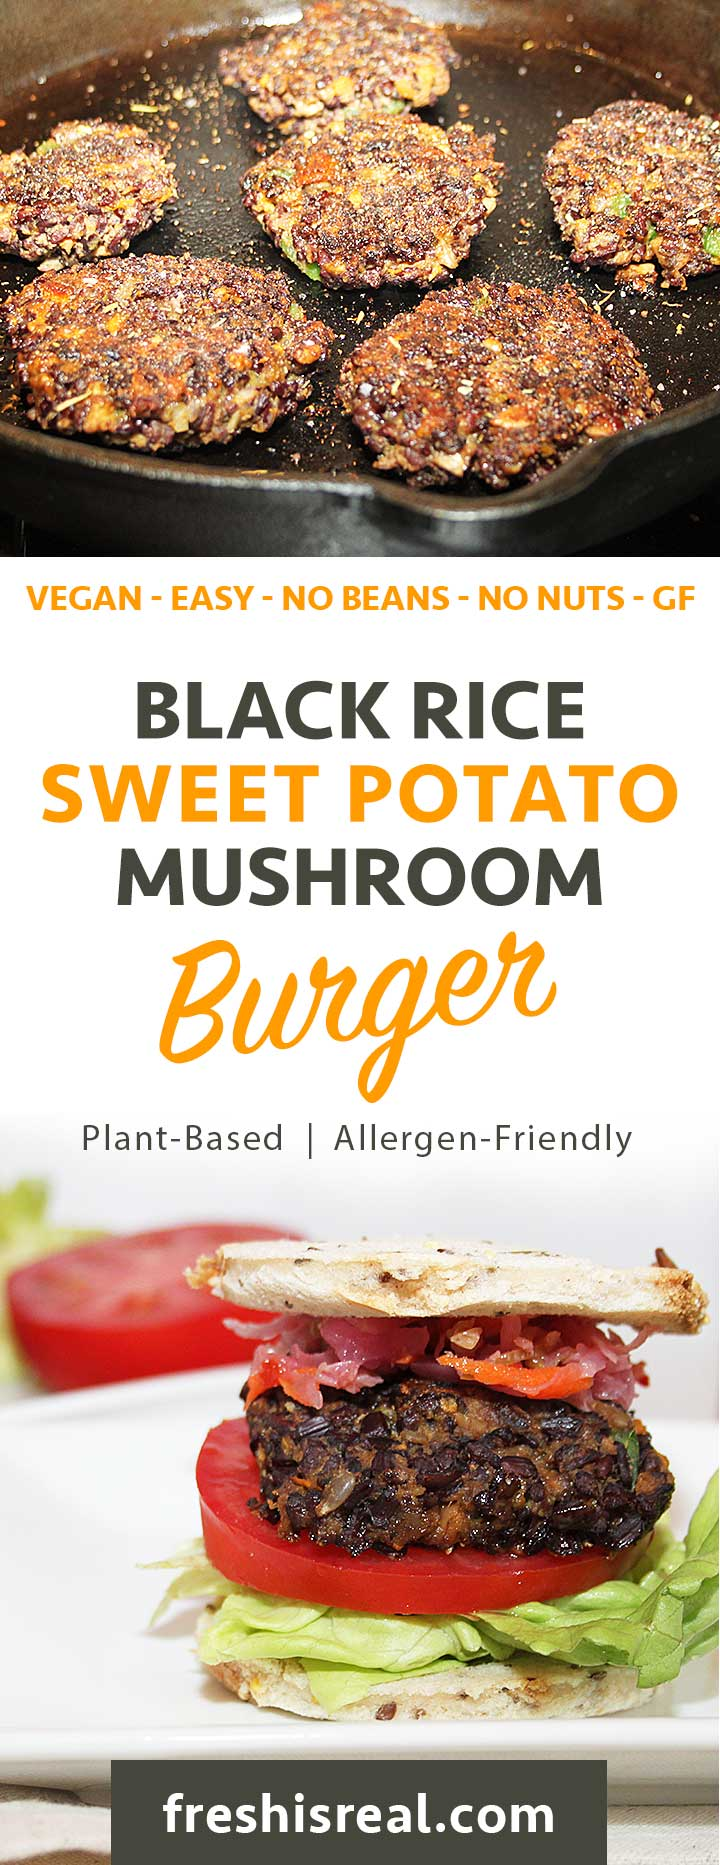 Easy Meatless Burger - Vegan Black Rice Sweet Potato Mushroom Burger - no legumes, no gluten, no nuts, no eggs, completely allergen-friendly | freshisreal.com